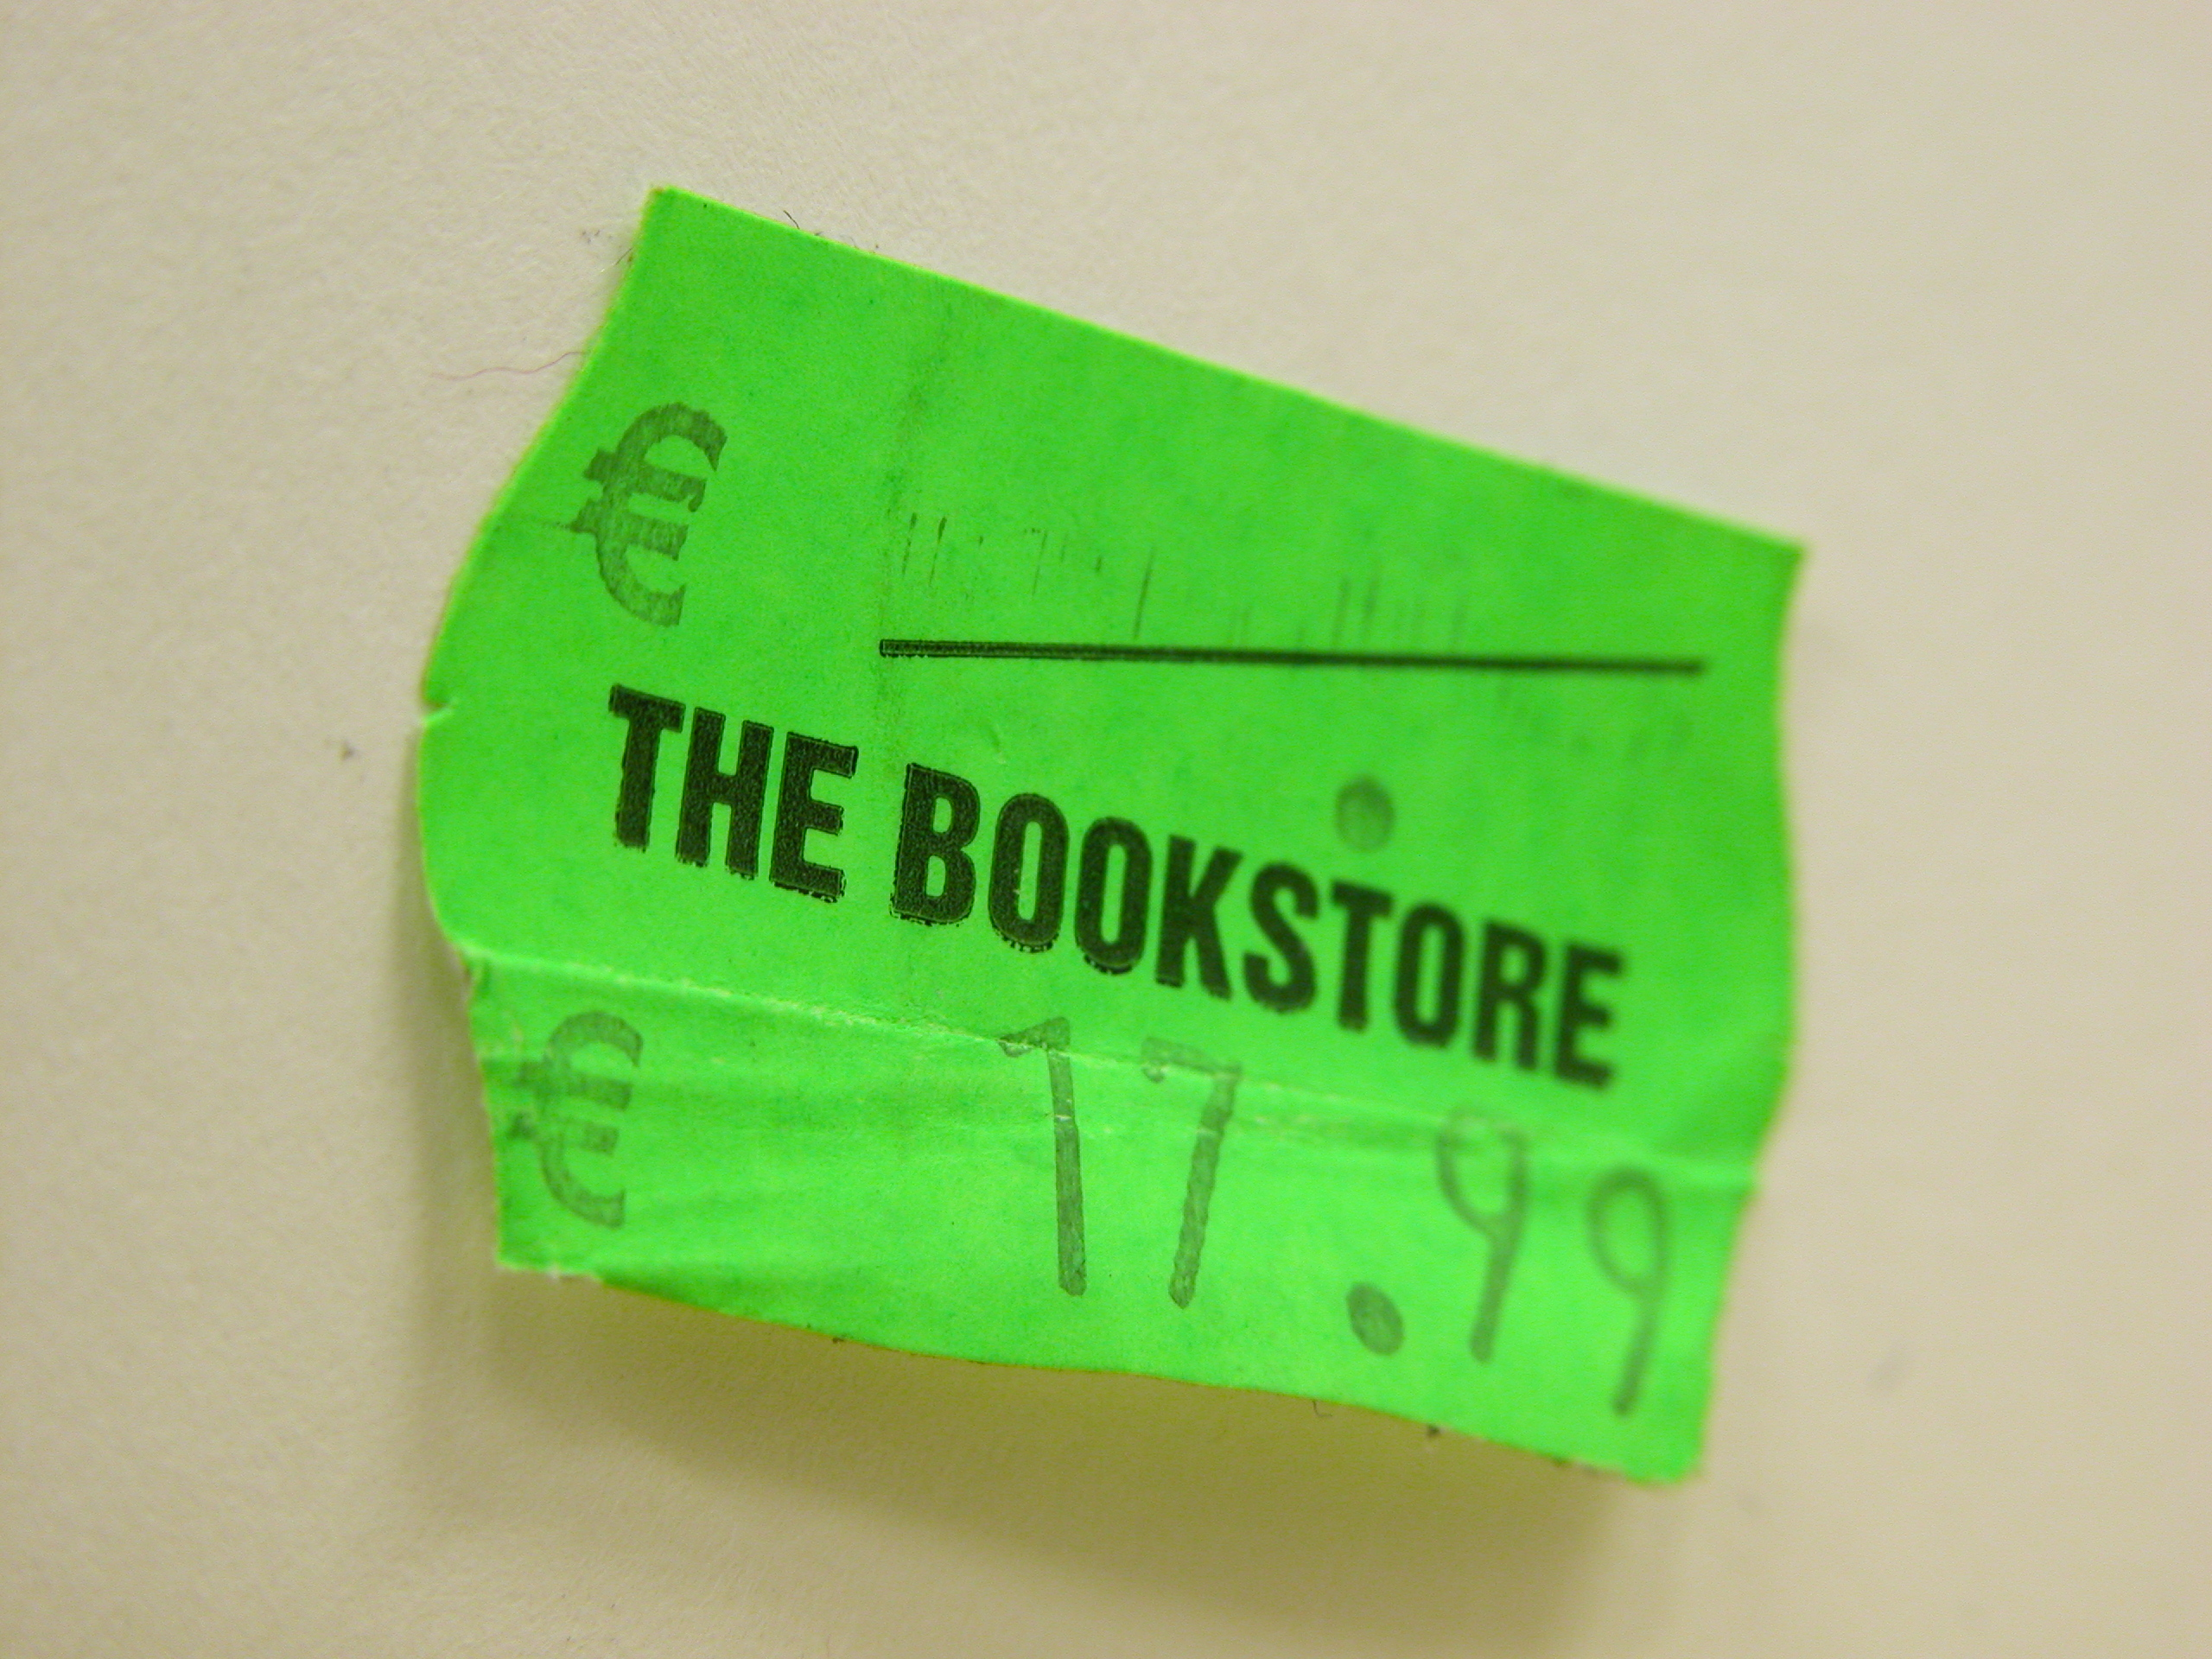 scripts objects tag signs pricetag green euro price pricing bookstore